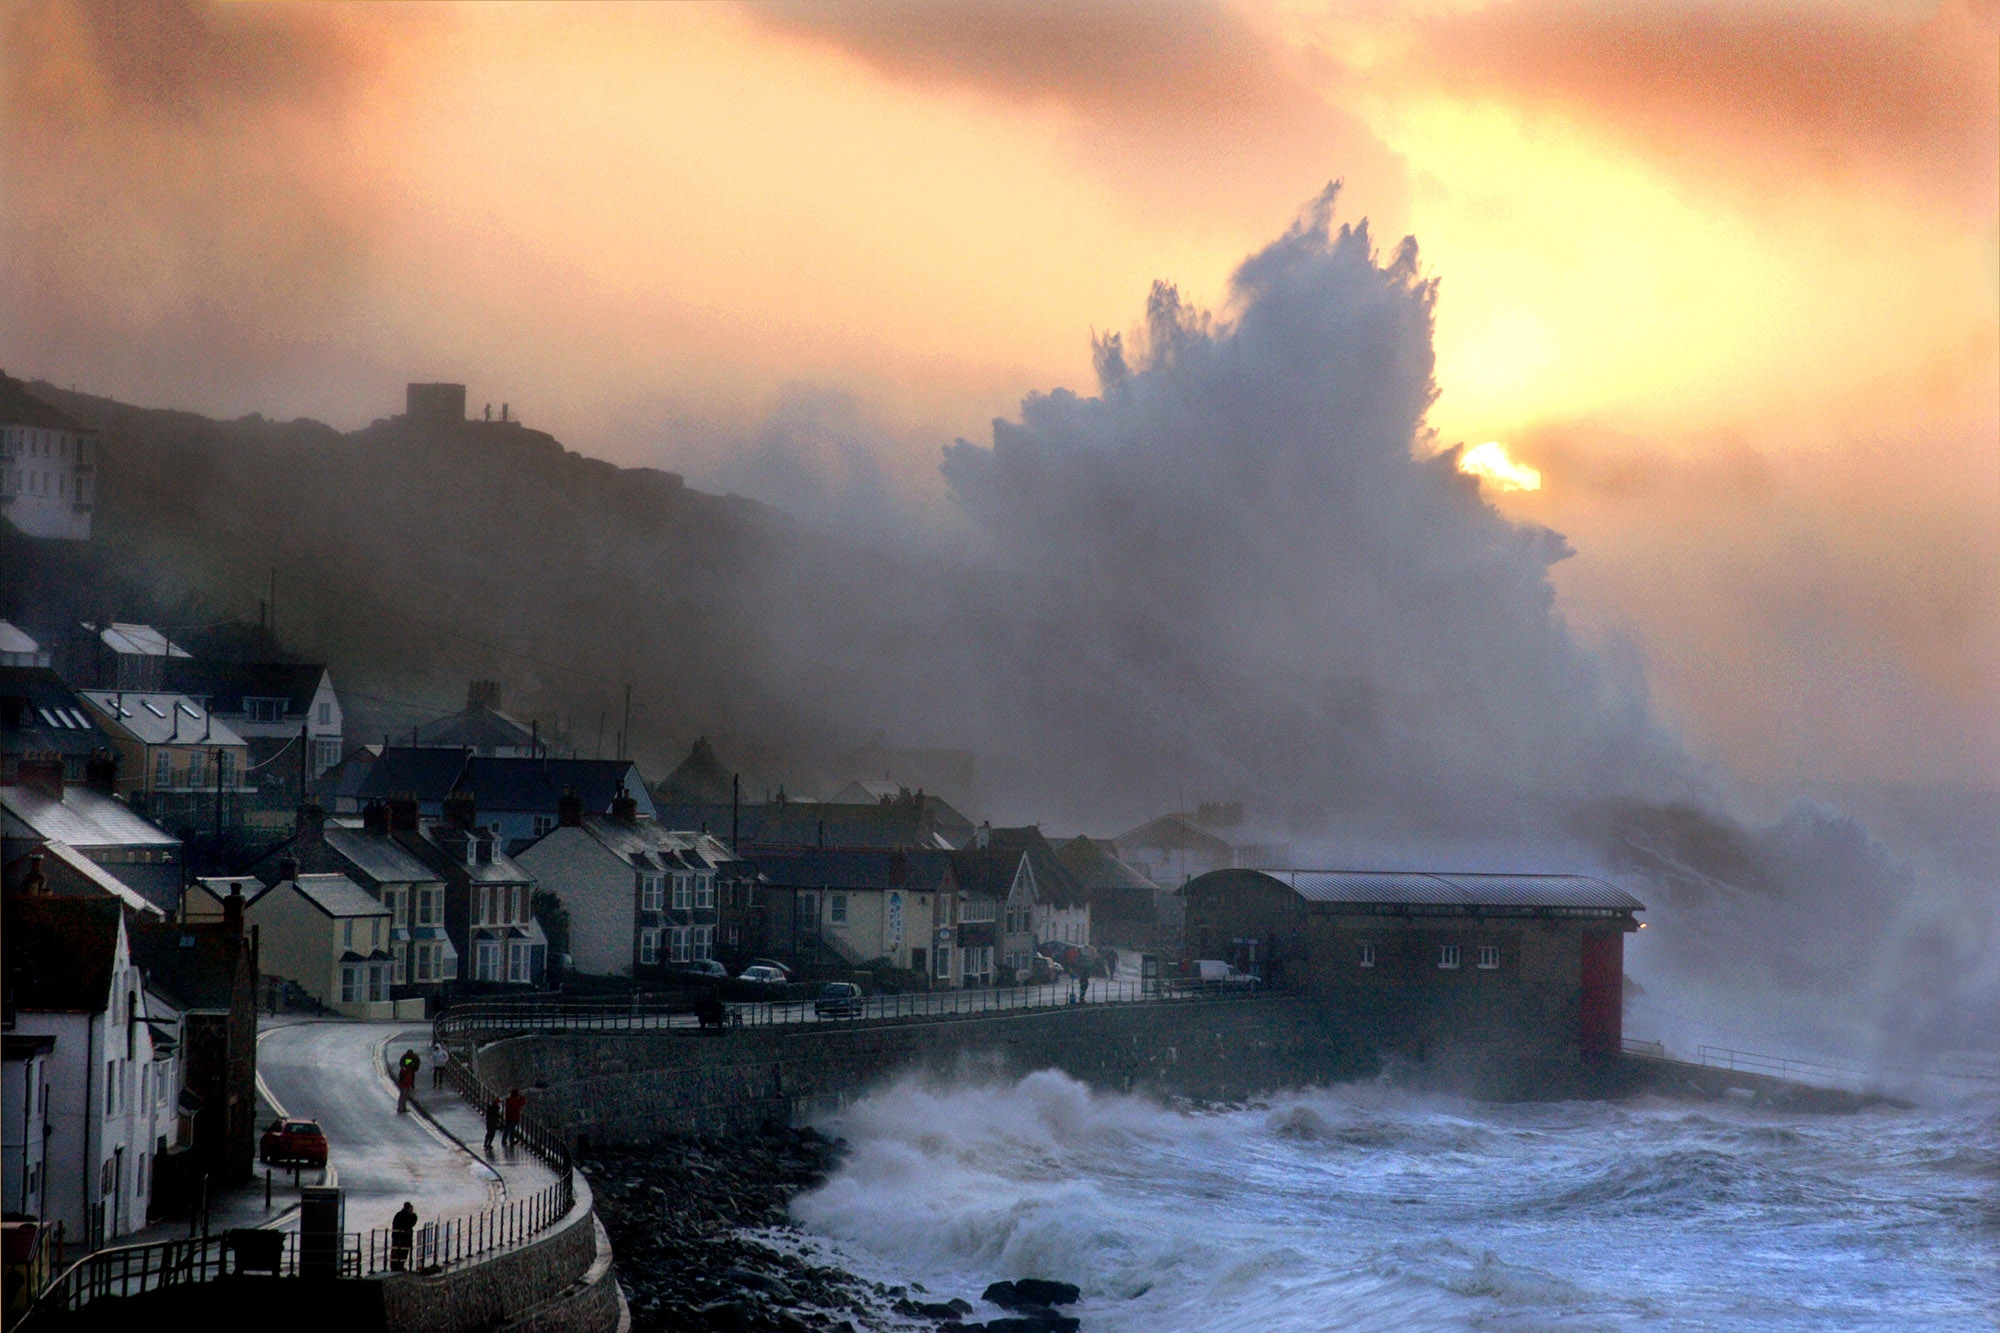 POSTPONED - Waves & Storms: Photographing the Cornish coast